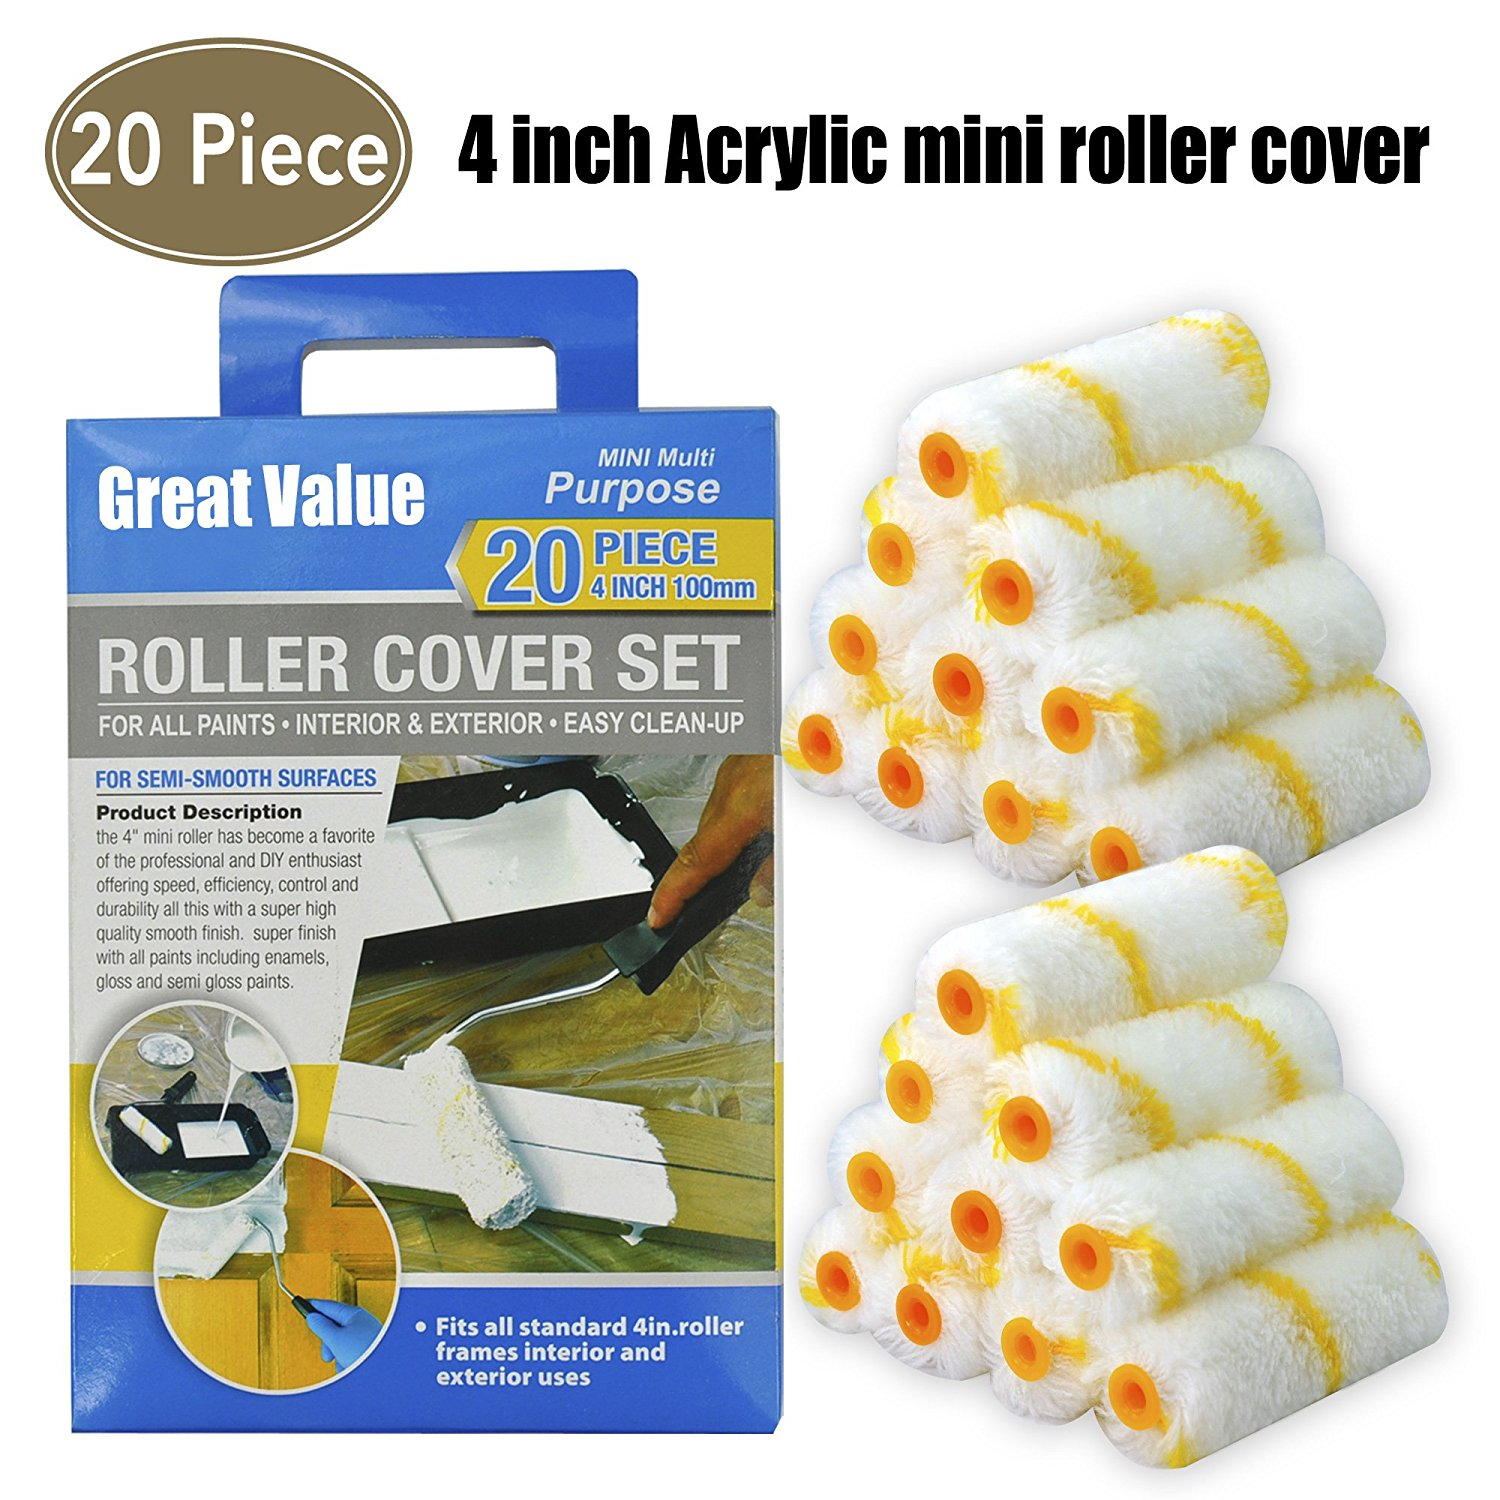 4-Inch Paint Roller Covers,Painters Roller,Painters Tools 20 Piece for All Paints,Acrylic Mini Paint Roller,Paint Roller Refills,Paint Rollers,Paint Roller,Paint Roller Cover,Roller Covers,Tools